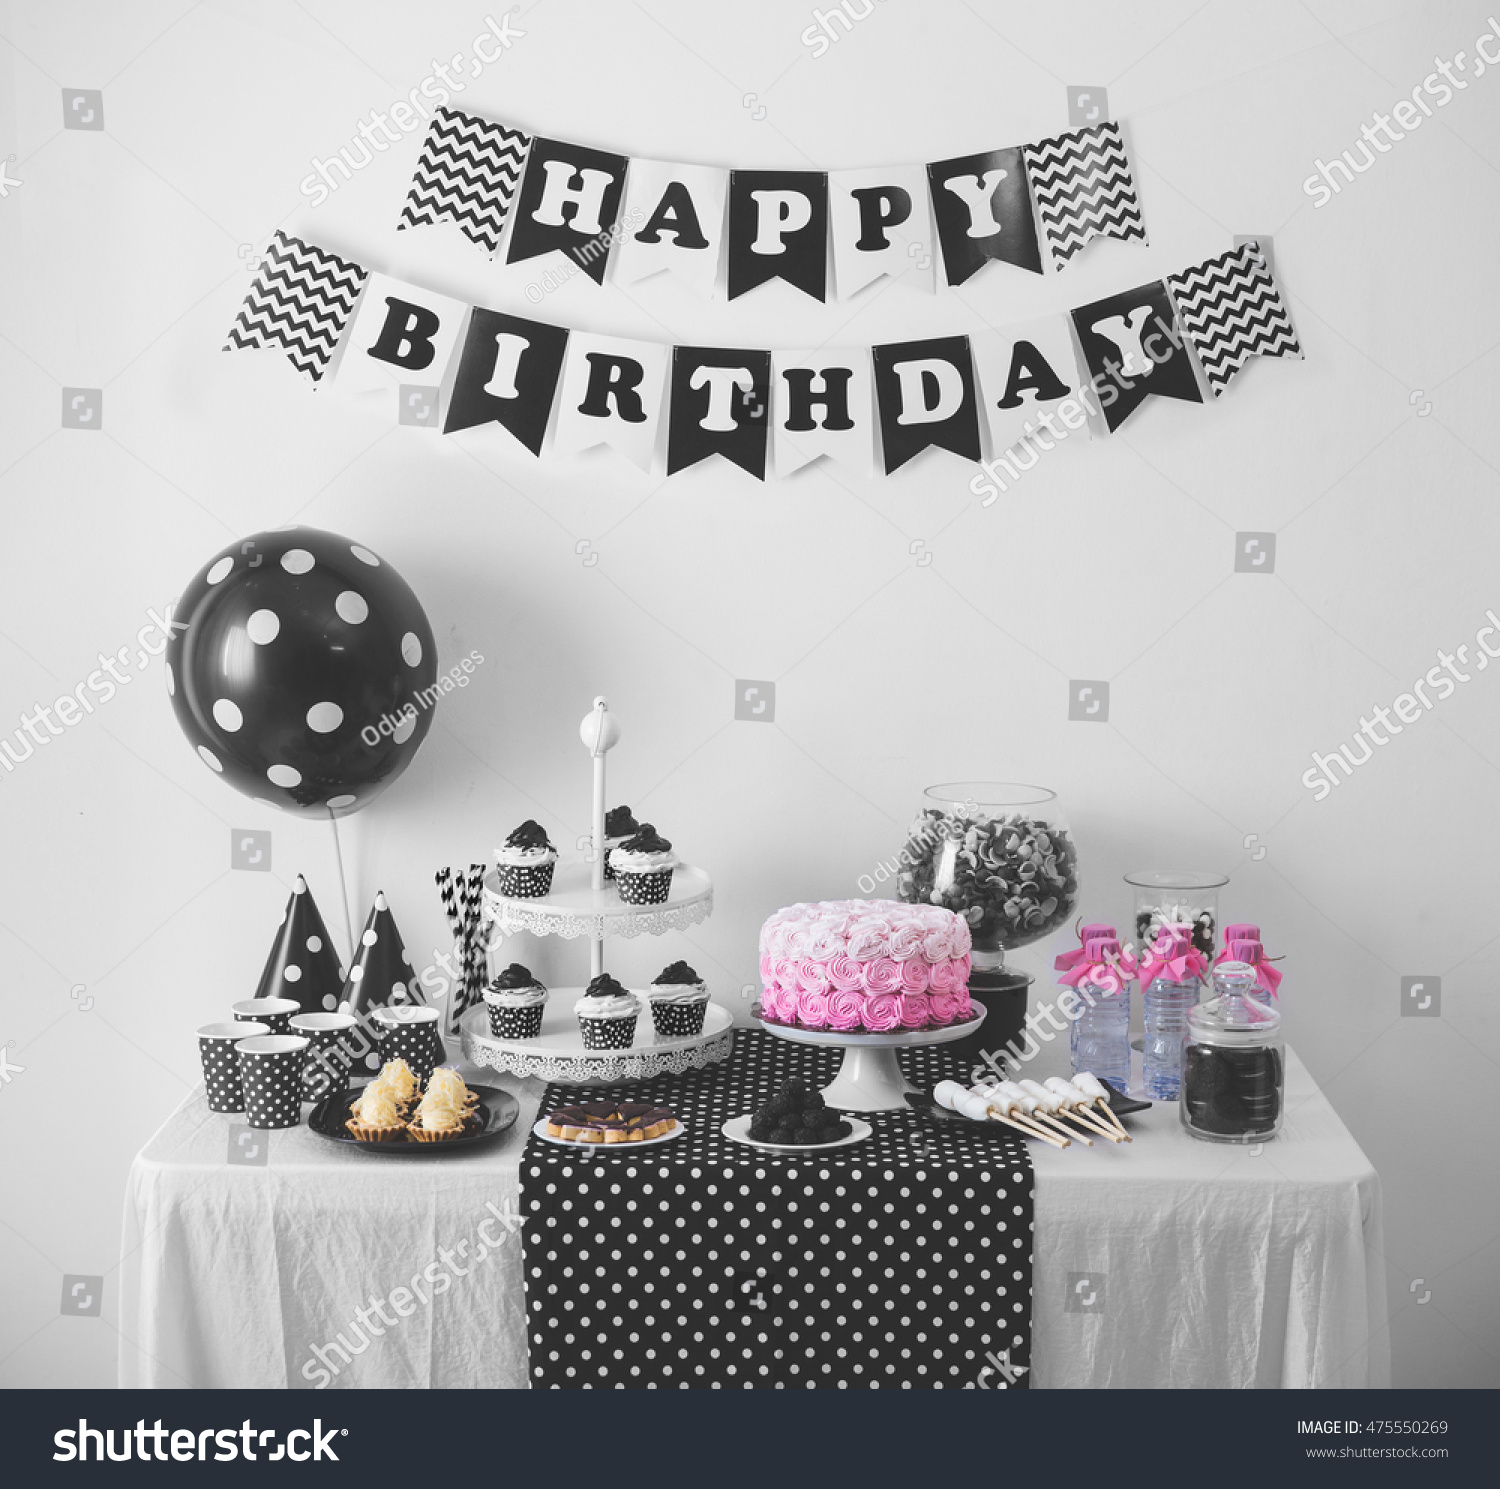 Portrait Of Black And White Birthday Party Decoration With Full Cake Sweet Candy